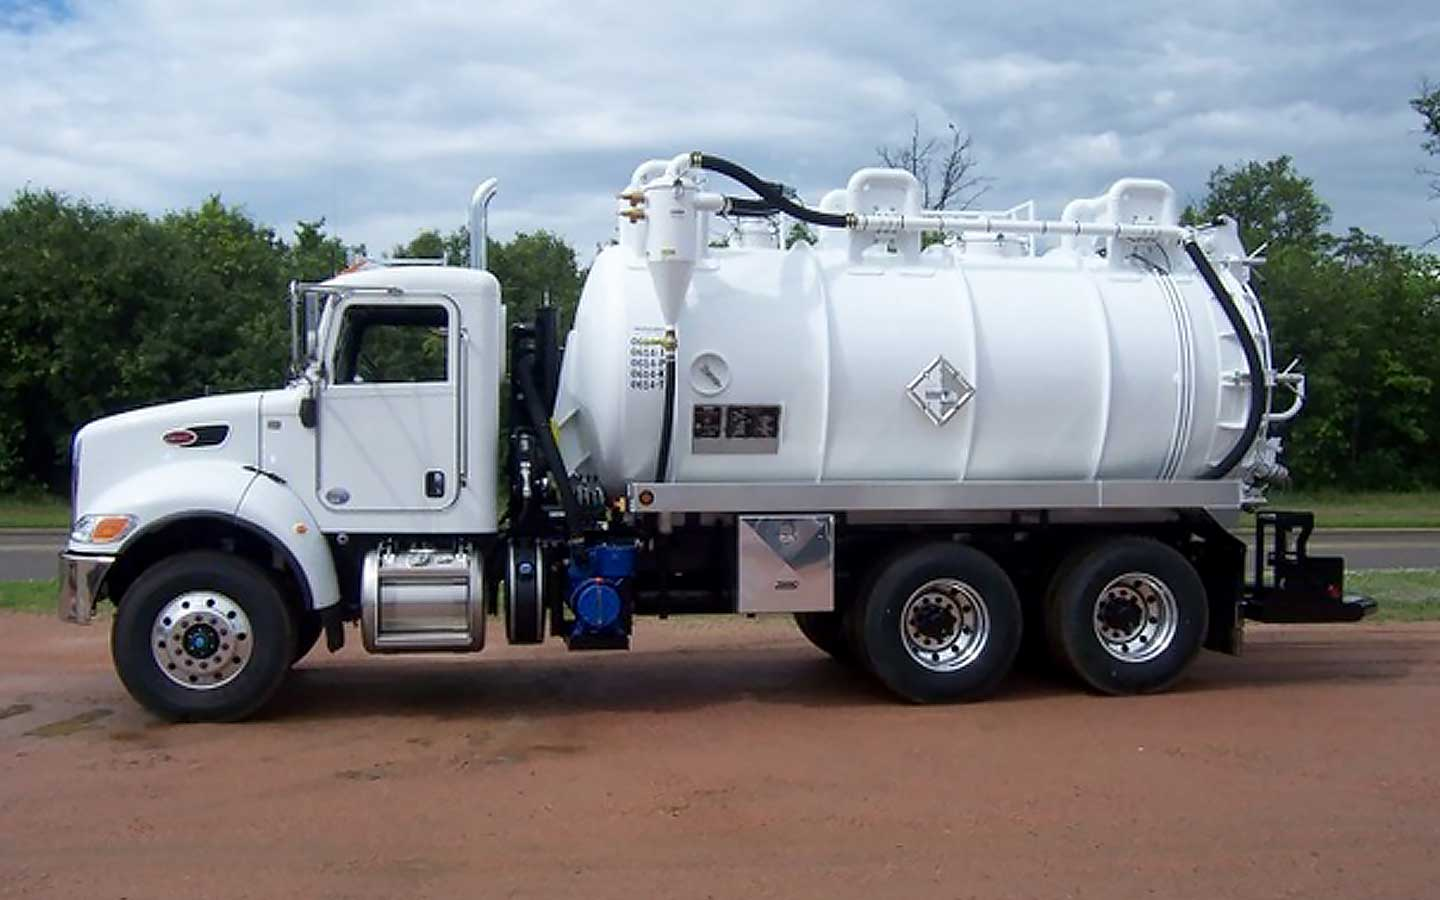 Image of Liquid Phase vacuum truck services by Spike Enterprise